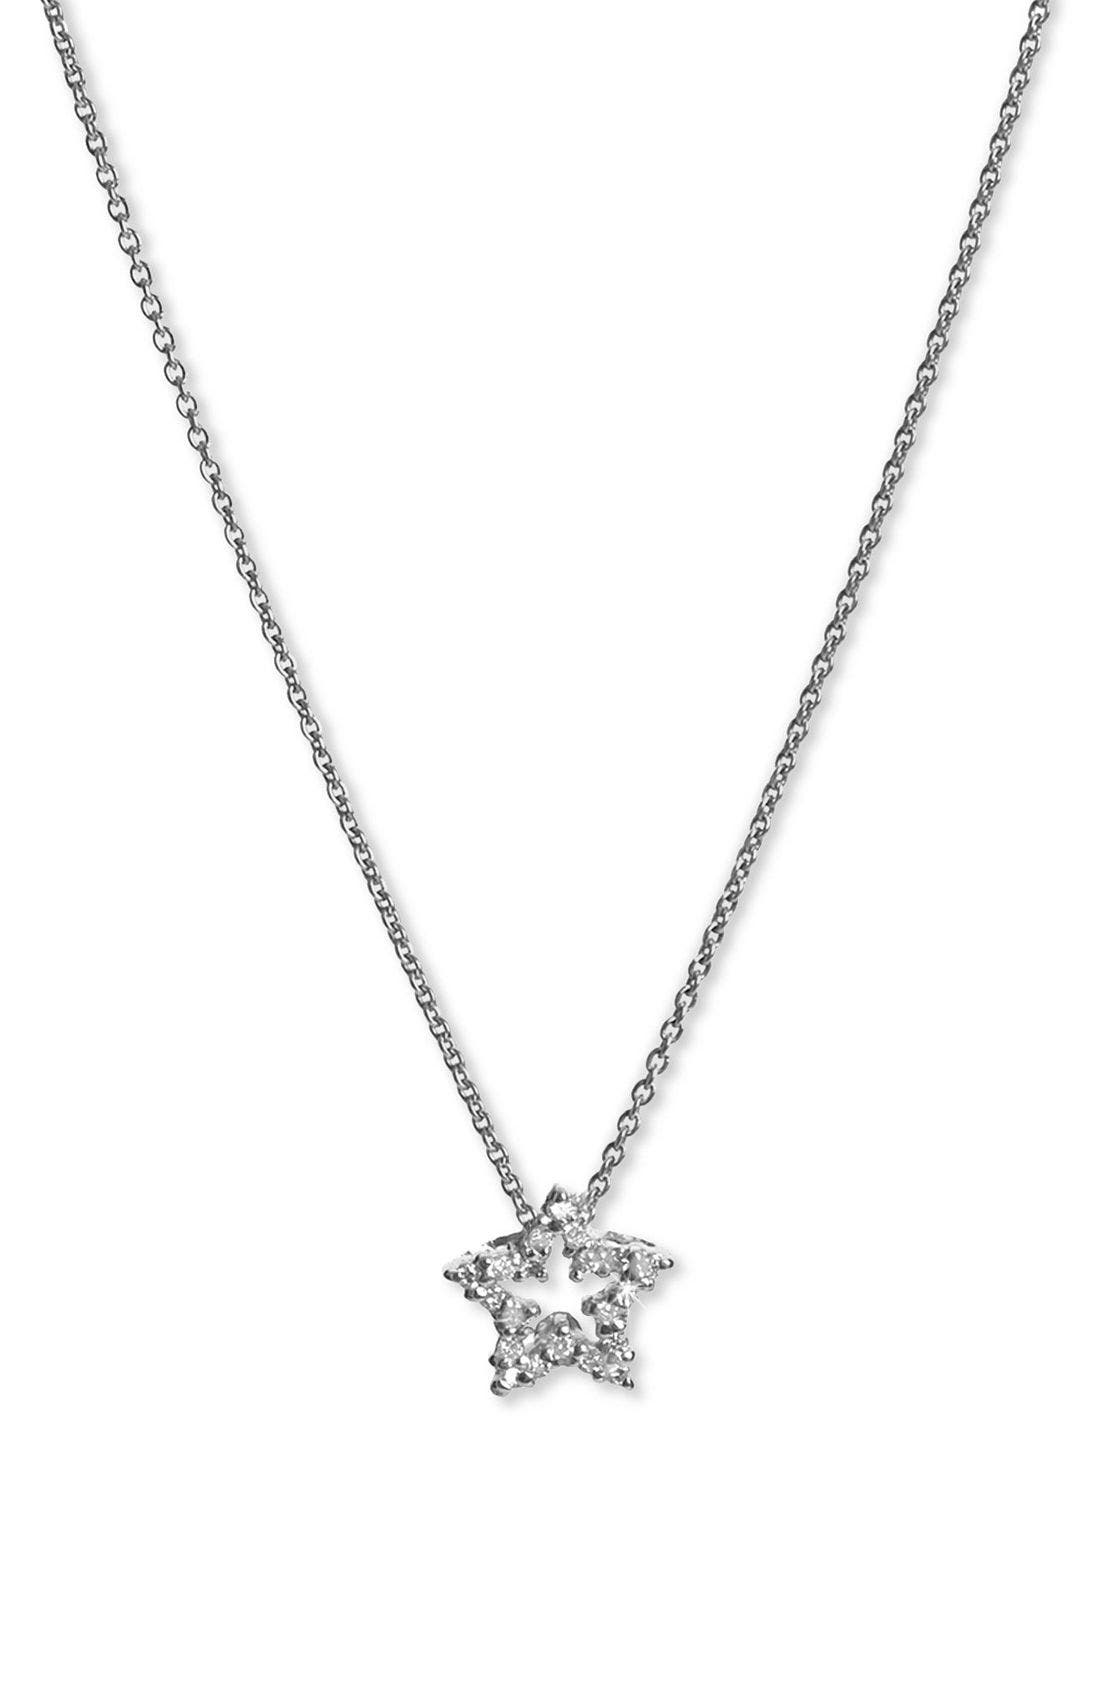 Main Image - Roberto Coin Tiny Treasures Star Pendant Necklace